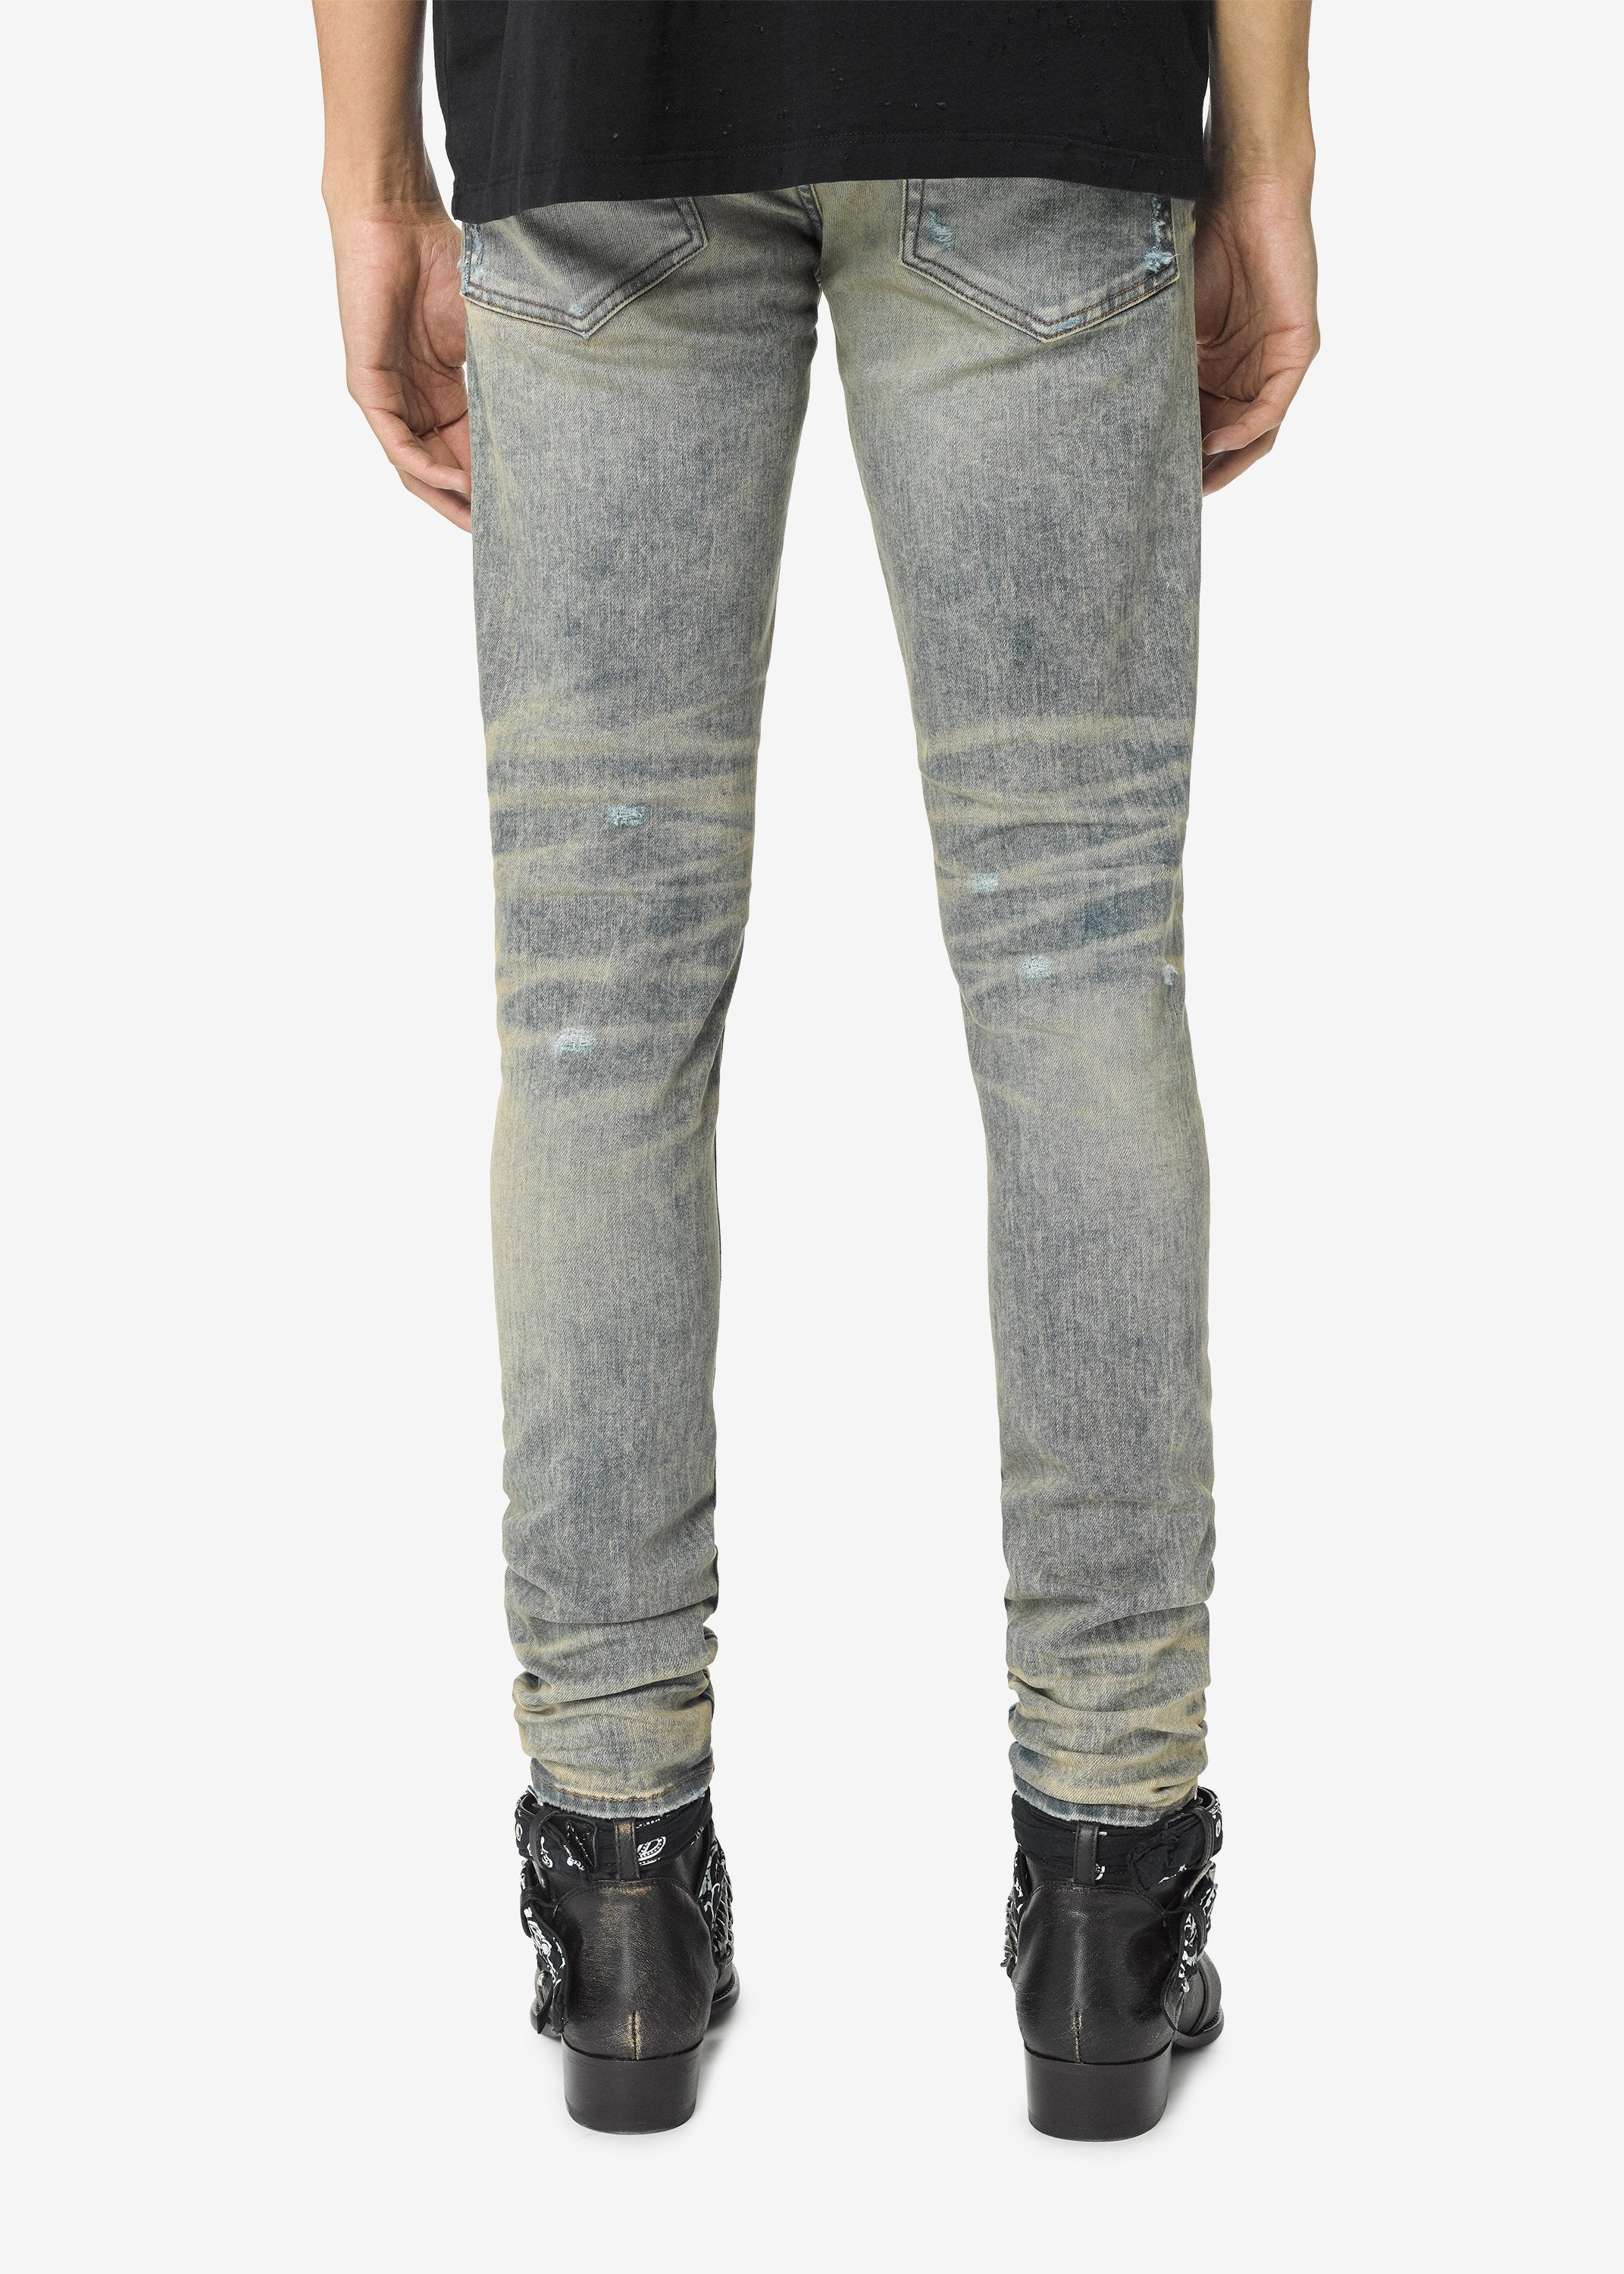 stack-jean-dirty-indigo-image-6